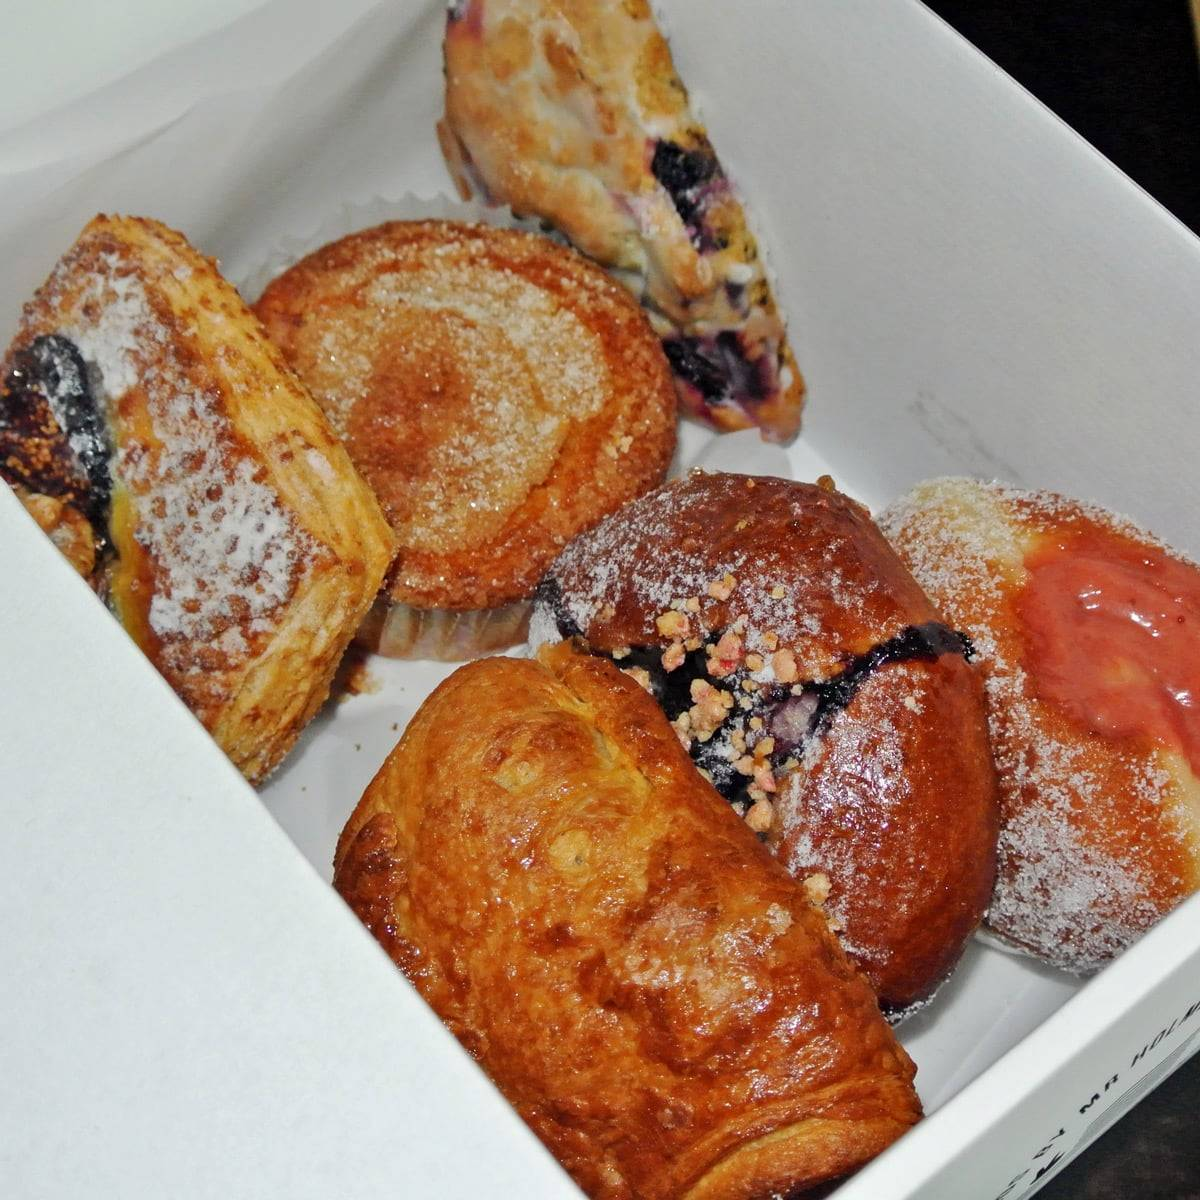 Get *All The Likes* With SF's Most Instagramable Pastries